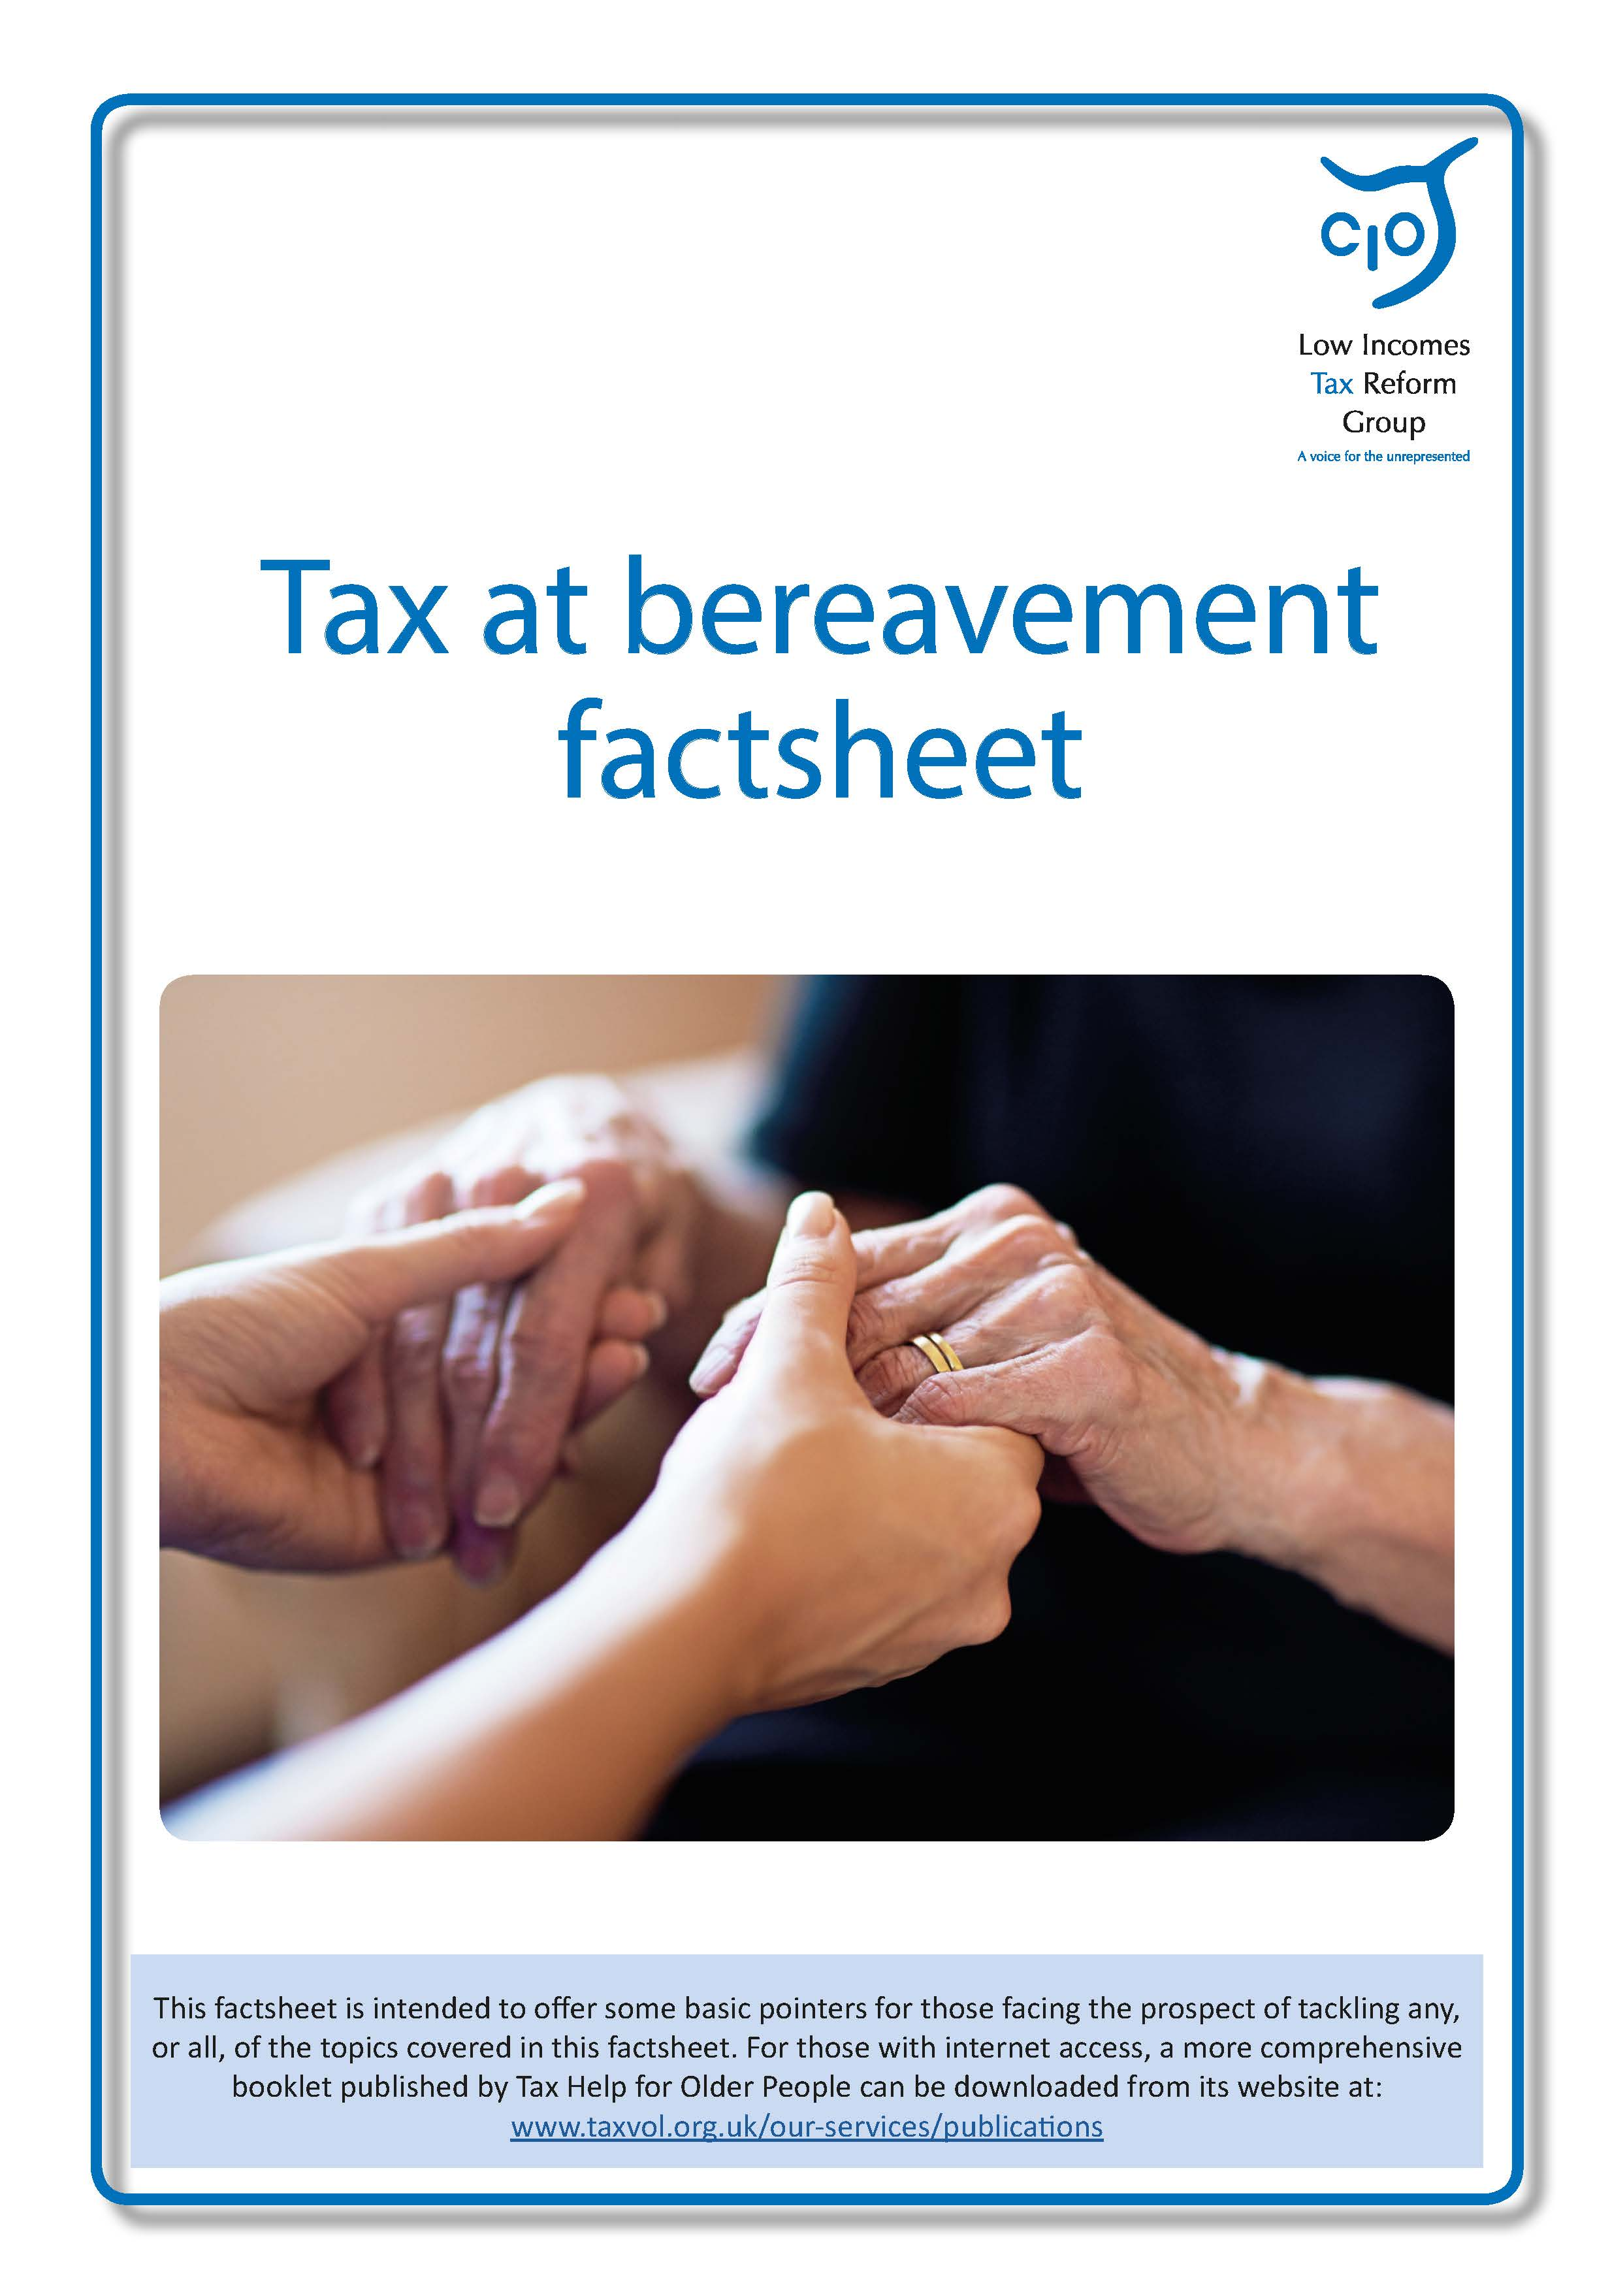 Tax at Bereavement factsheet